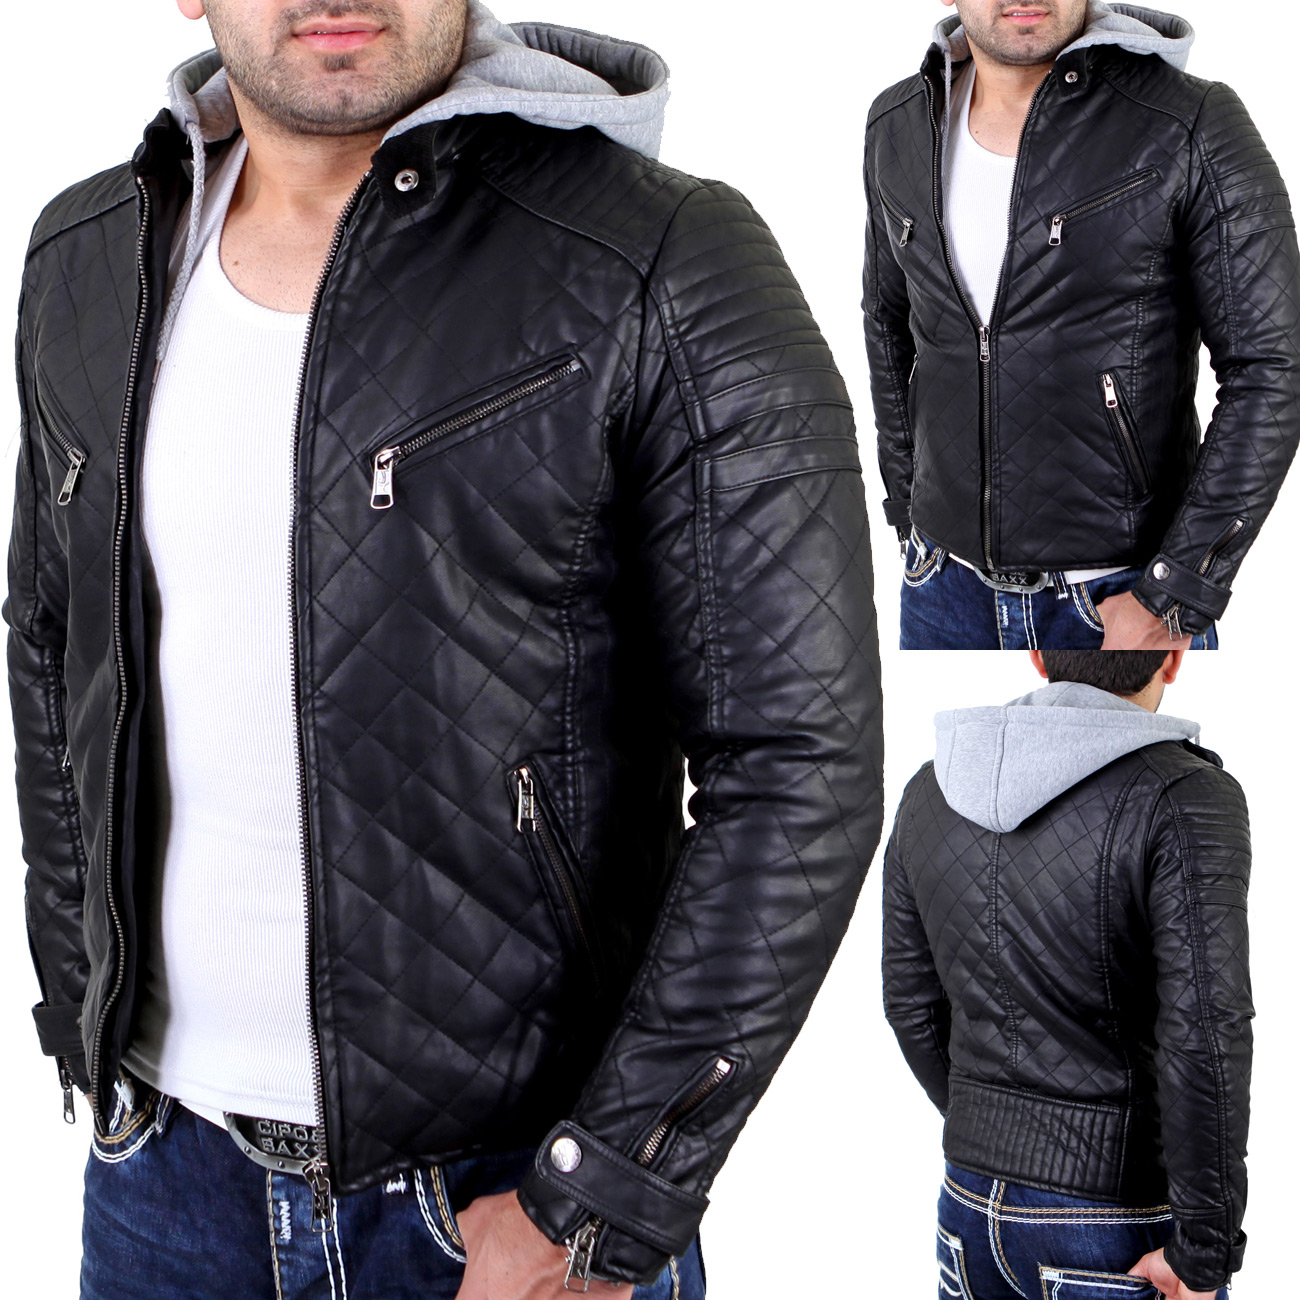 reslad rs 8801 lederjacke herren diamond stich kunst lederjacke mit kapuze schw ebay. Black Bedroom Furniture Sets. Home Design Ideas